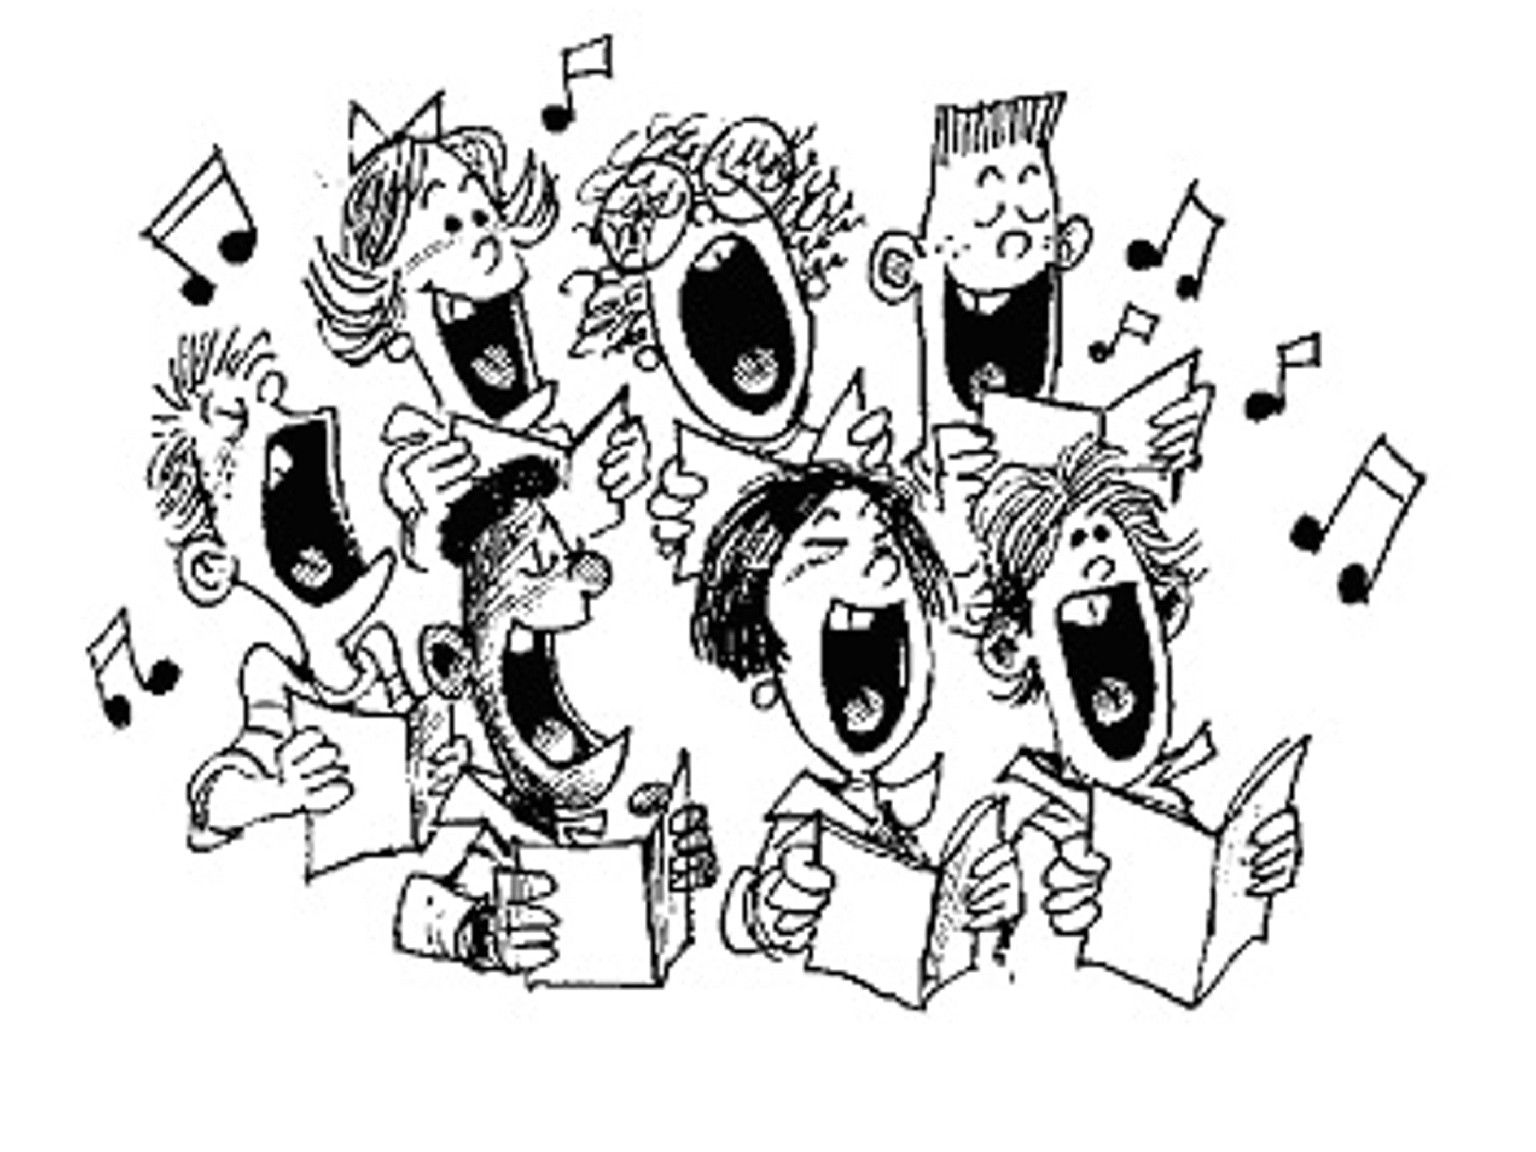 Church choir clipart church choir singing clip art - Chorale dessin ...